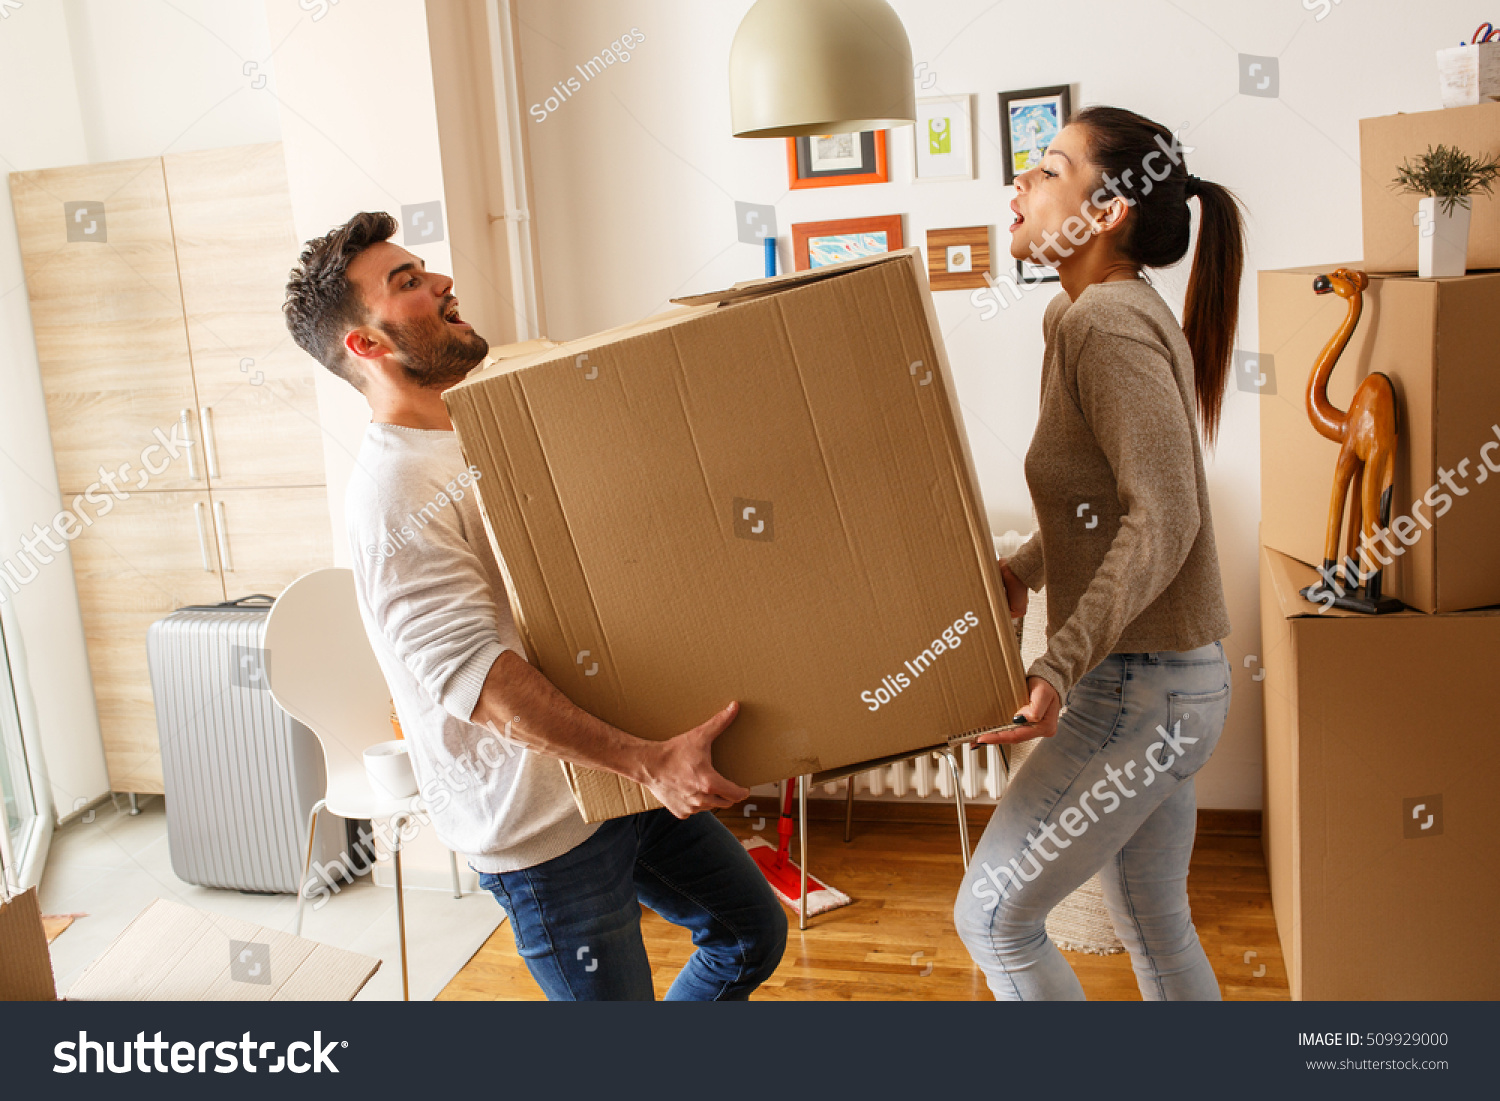 Young couple carrying big cardboard box stock photo 509929000 shutterstock - Young couple modern homes ...